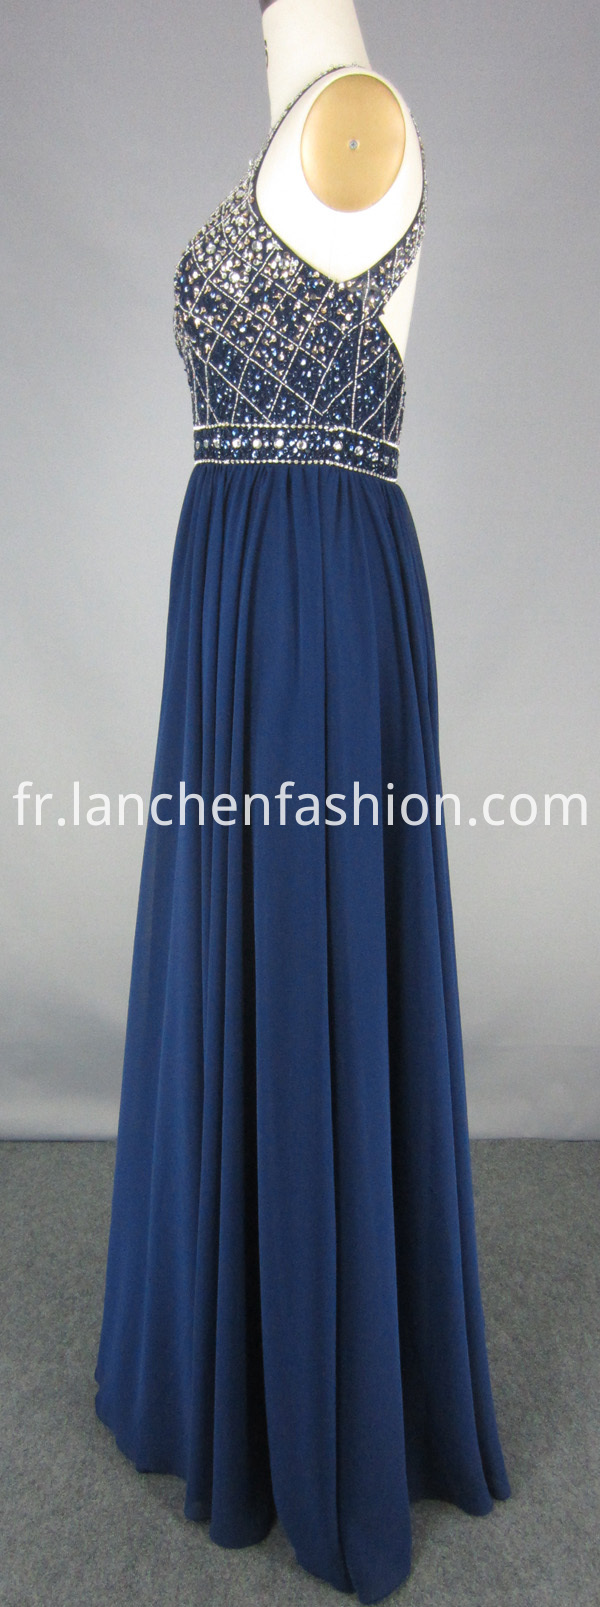 Chiffon Dress Bridesmaid